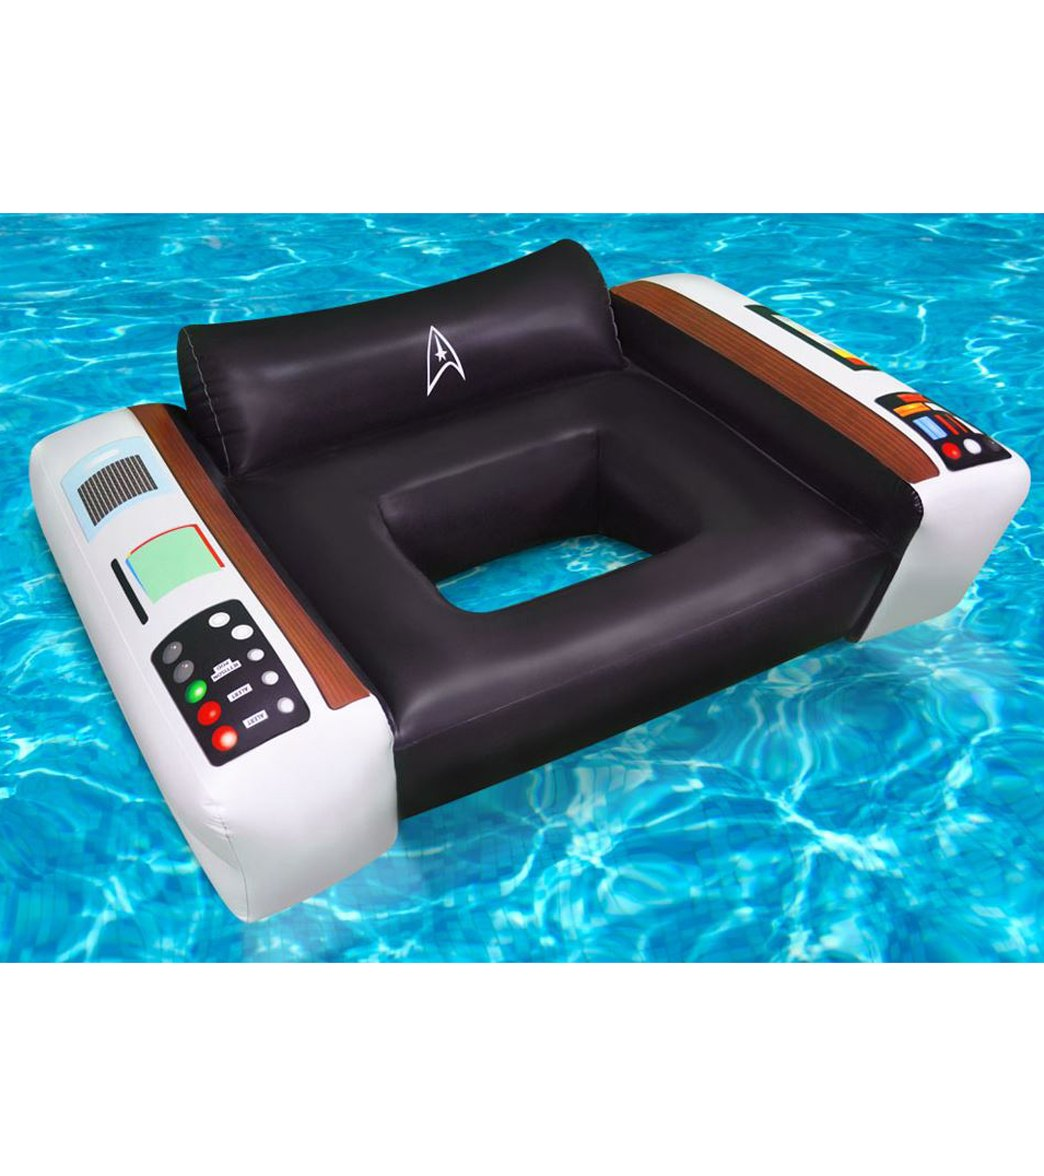 chair pool floats danish teak chairs for sale big mouth toys officially licensed star trek captain s float at swimoutlet com